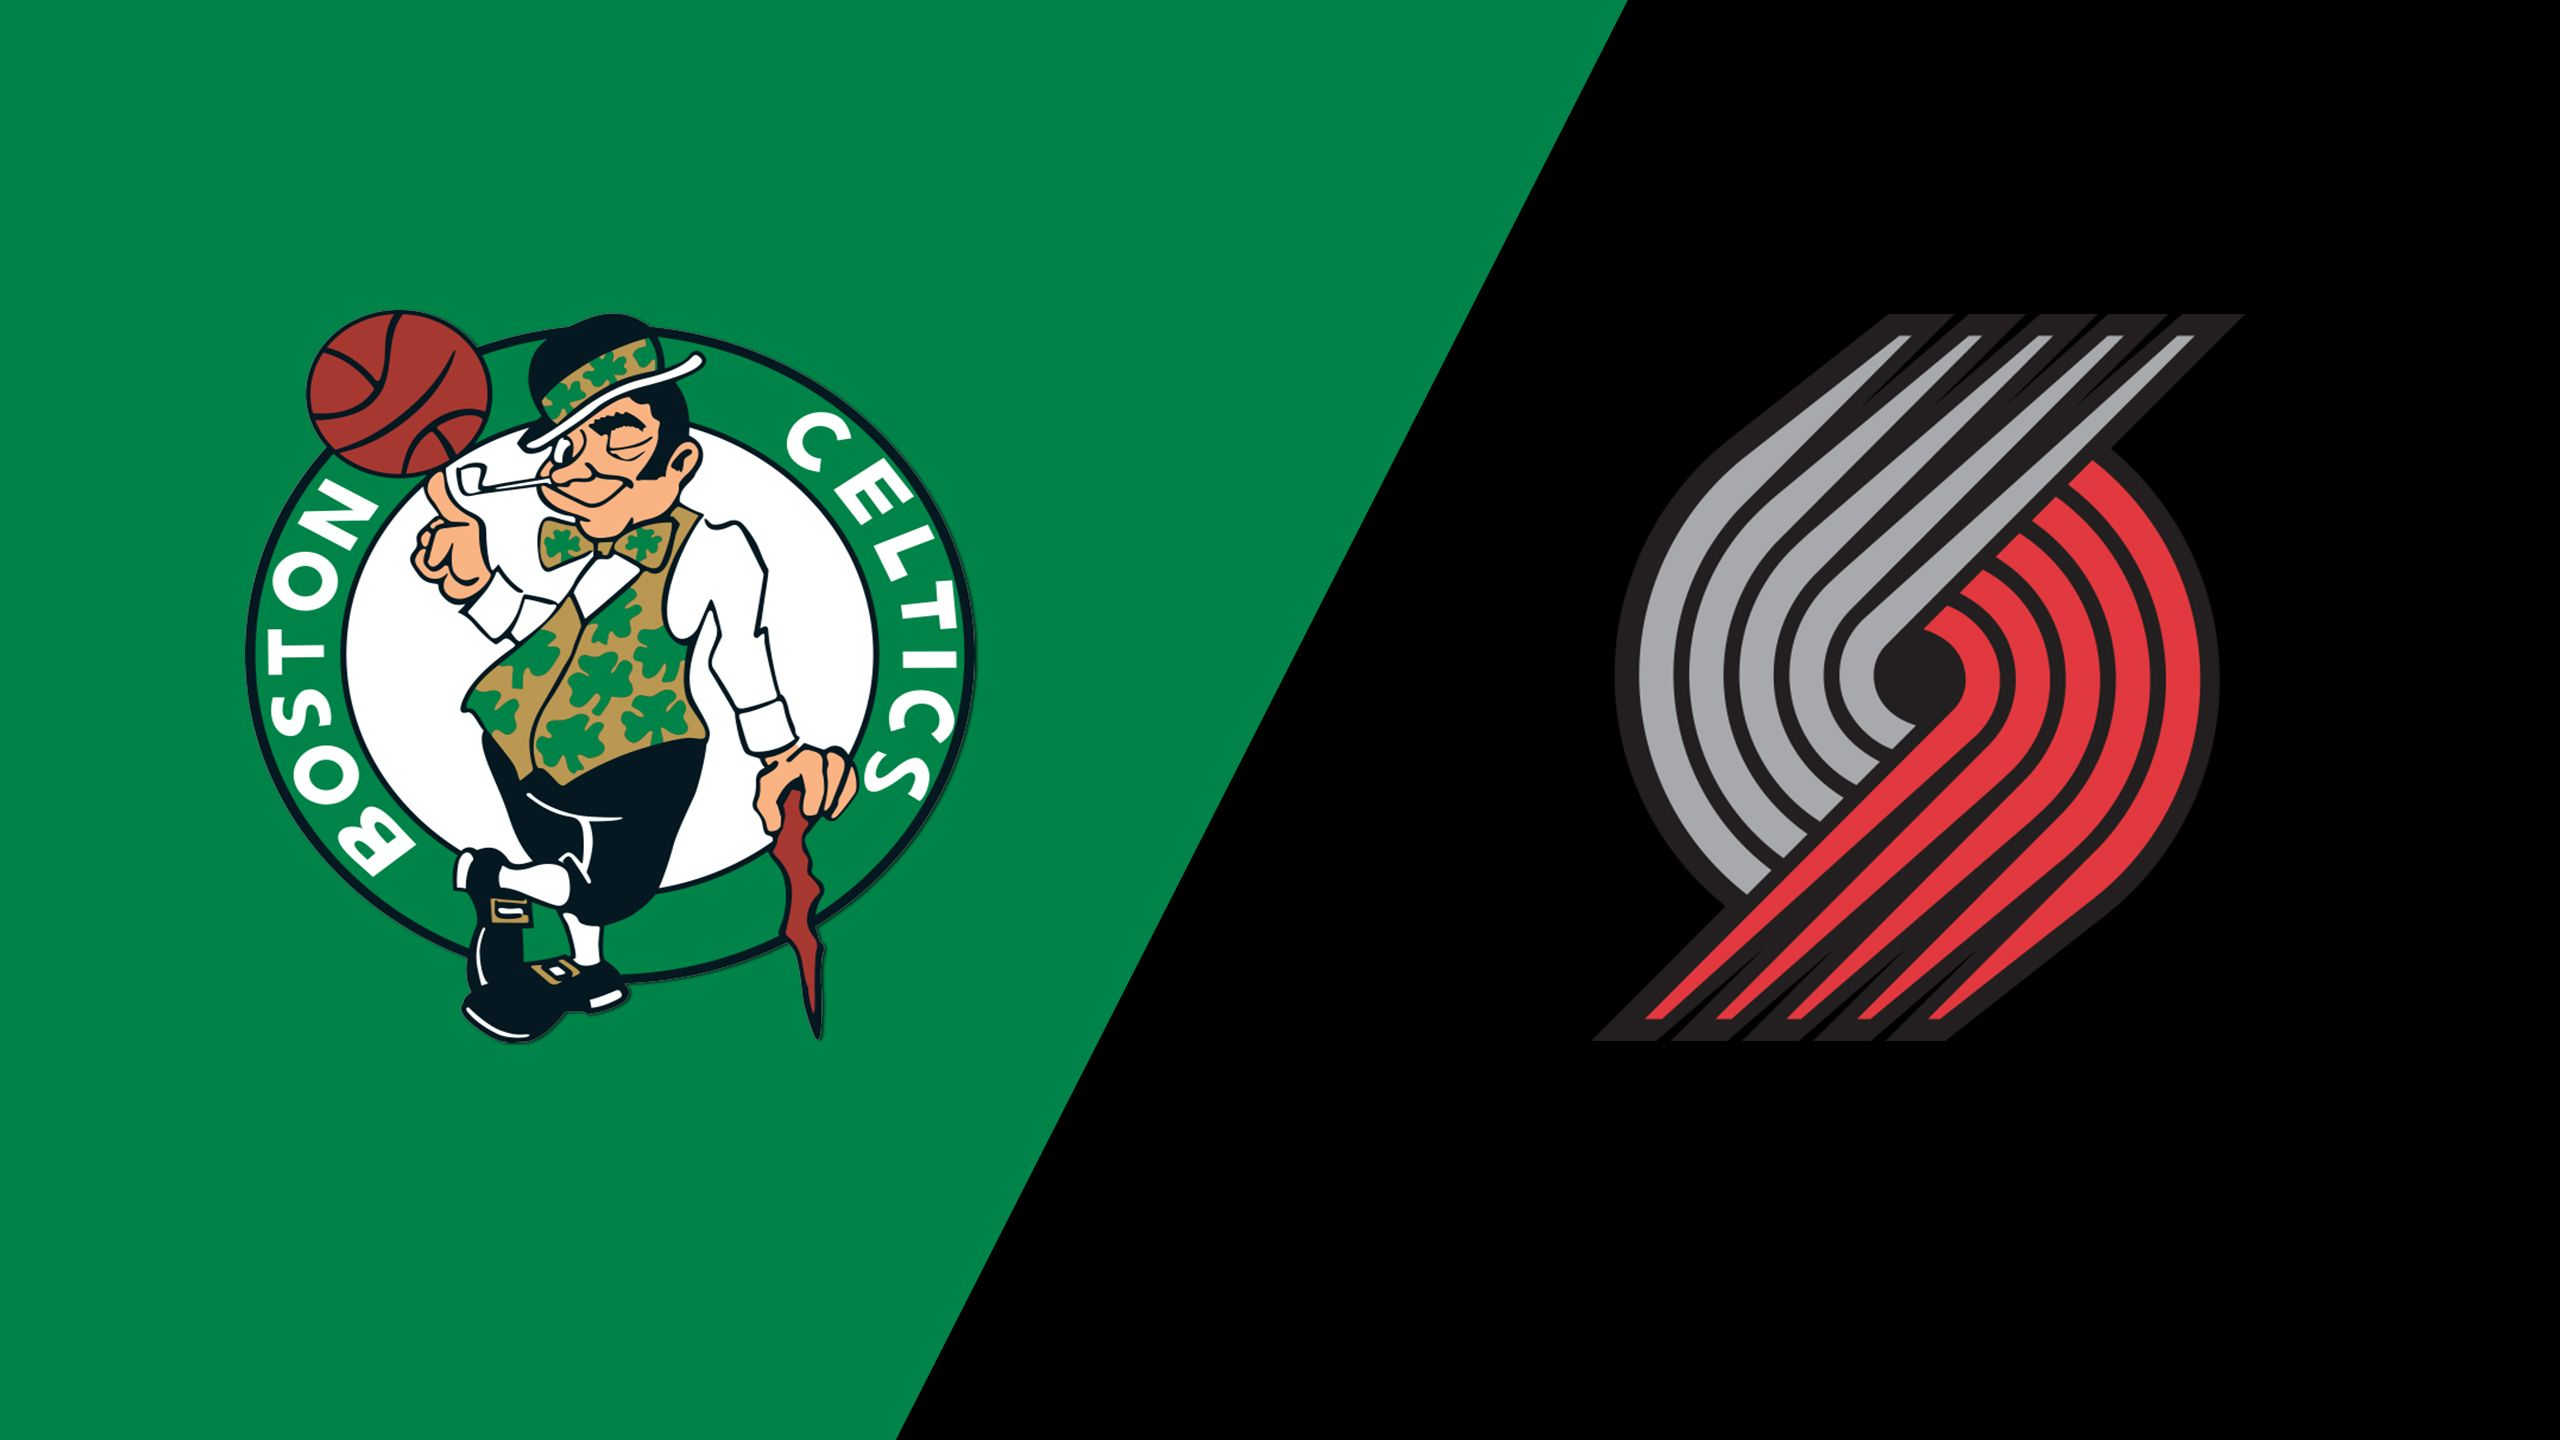 Boston Celtics vs. Portland Trail Blazers (Quarterfinal)